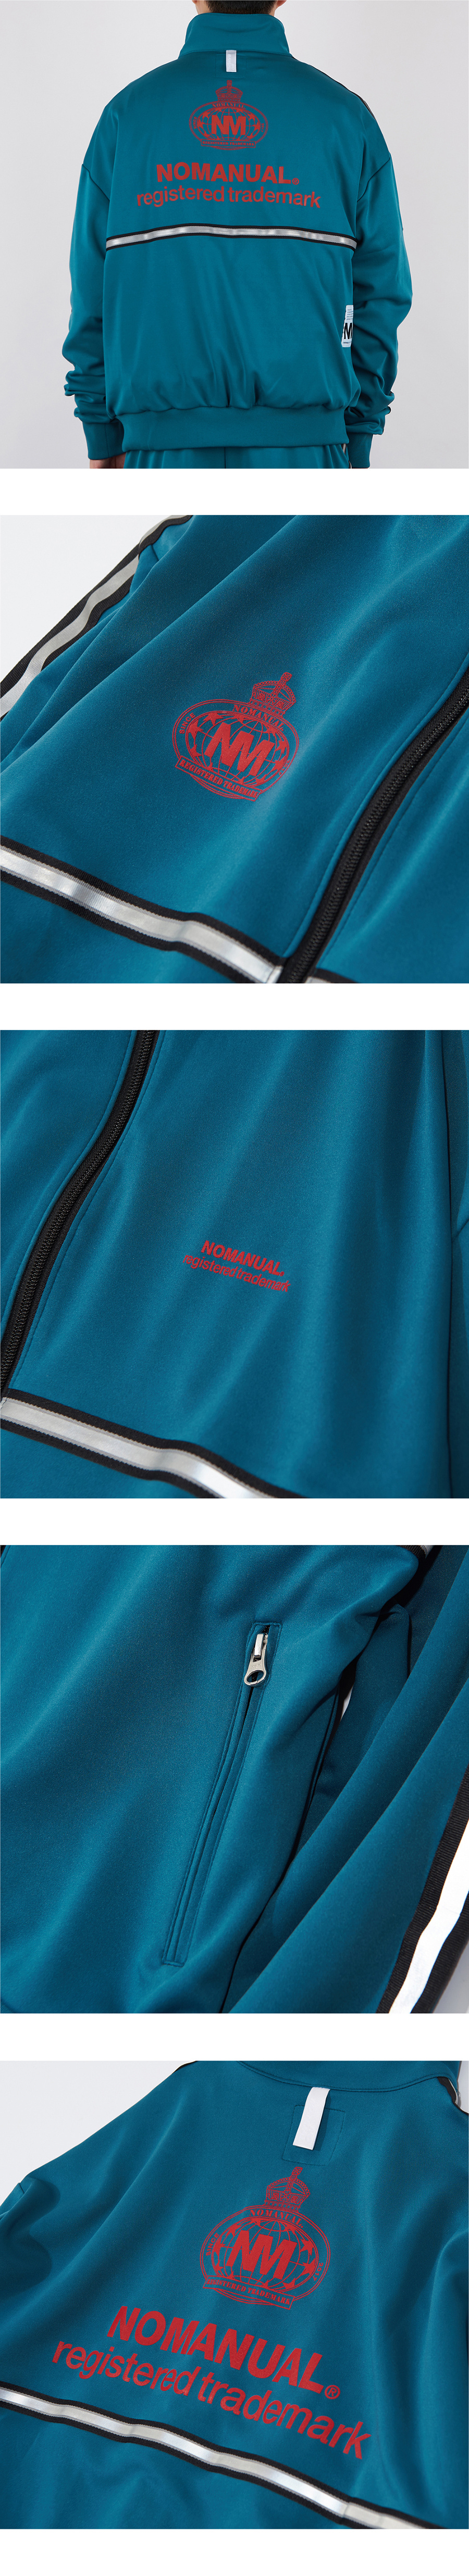 노매뉴얼(NOMANUAL) NM EMBLEM JERSEY TRAINING JACKET - VIRIDIAN